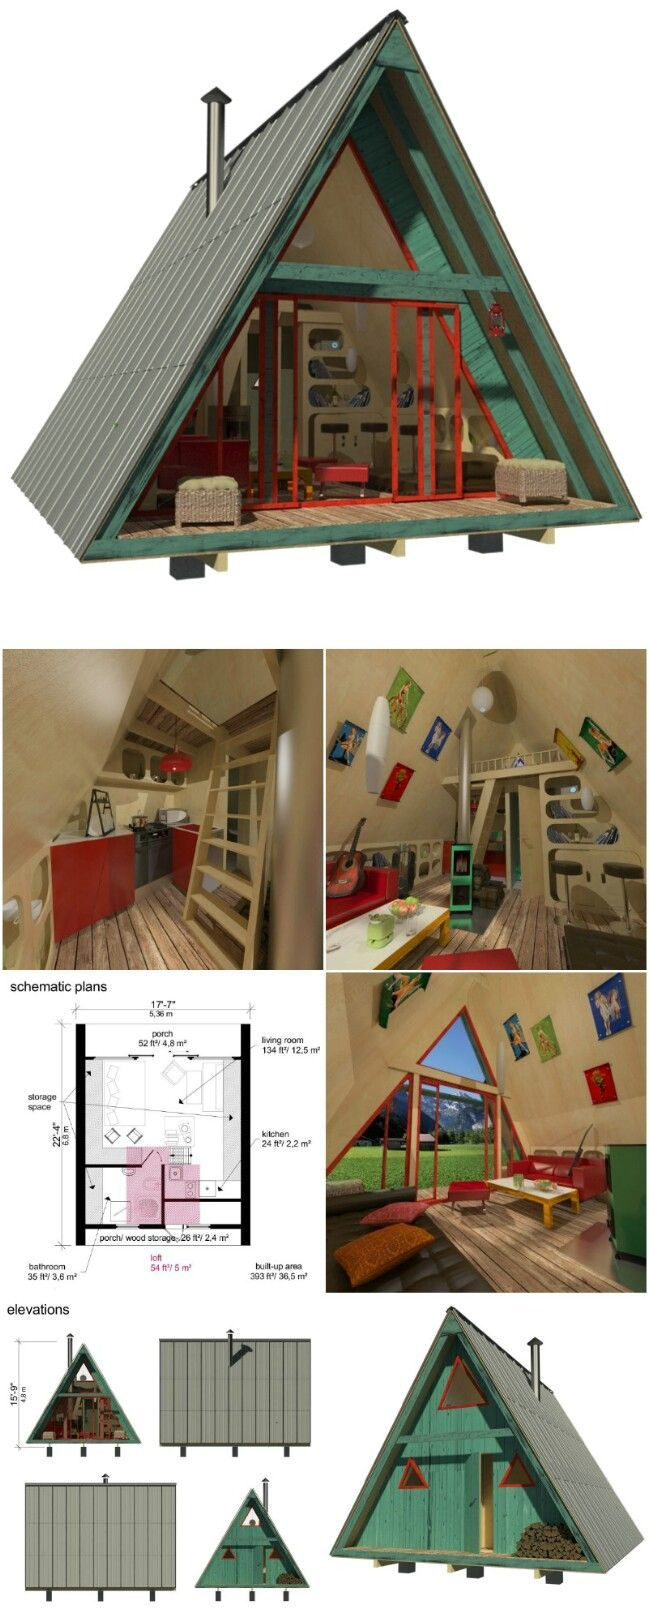 good build it yourself house plans #10: 25 Plans to Build Your Own Fully Customized Tiny House on a Budget